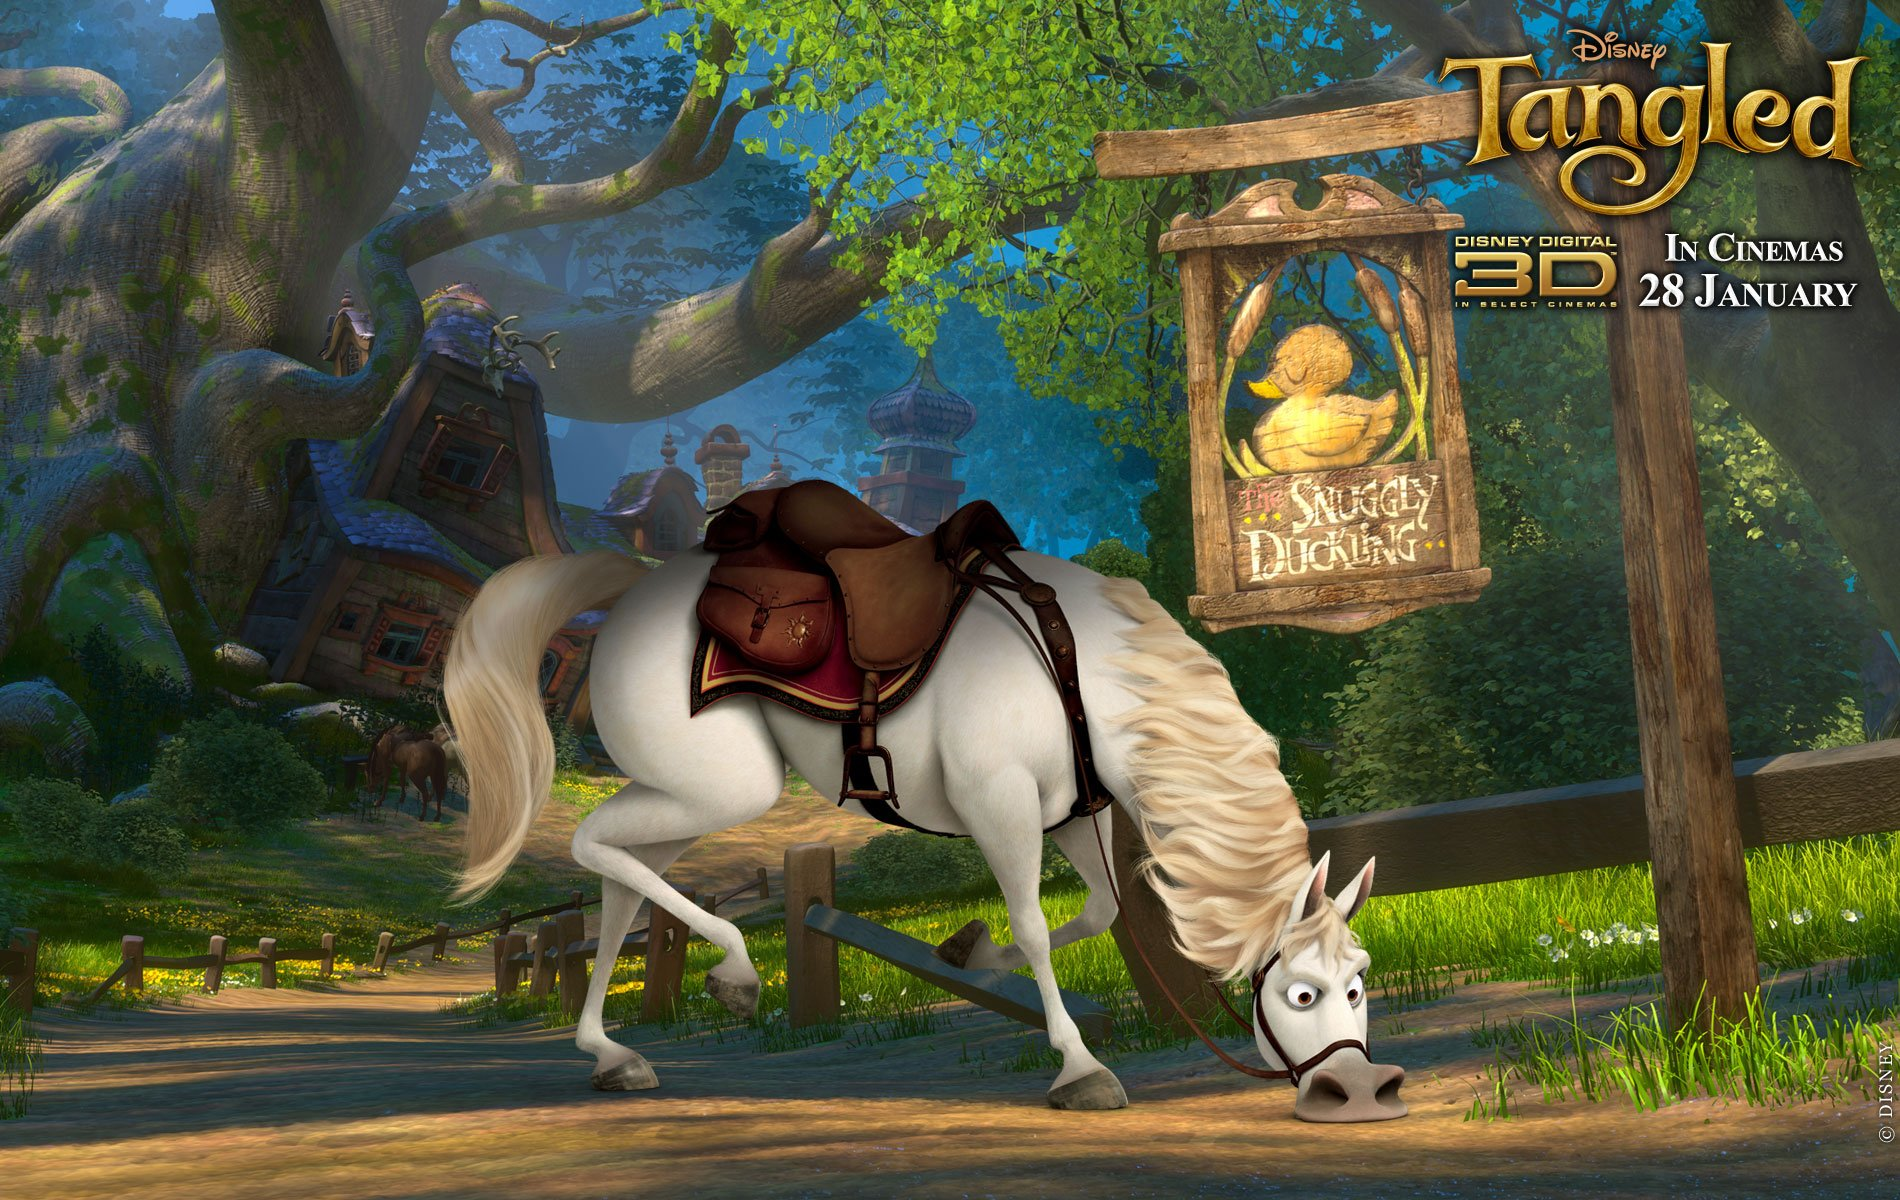 maximus-horse-Disney-Tangled-Wallpaper.jpg